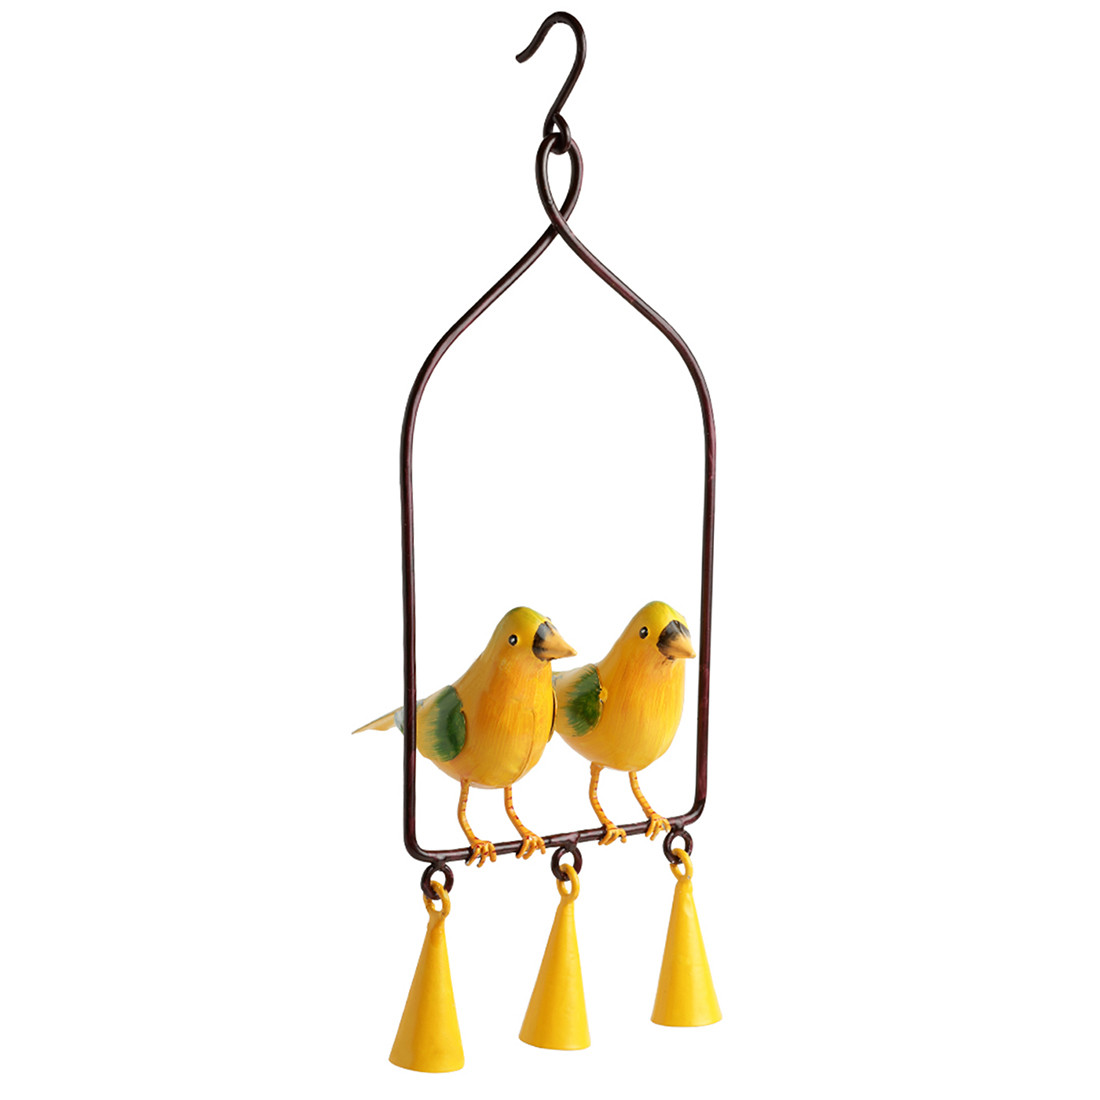 Moorni Cannery Twittery Hand-Painted Decorative Hanging Wind Chime In Metal